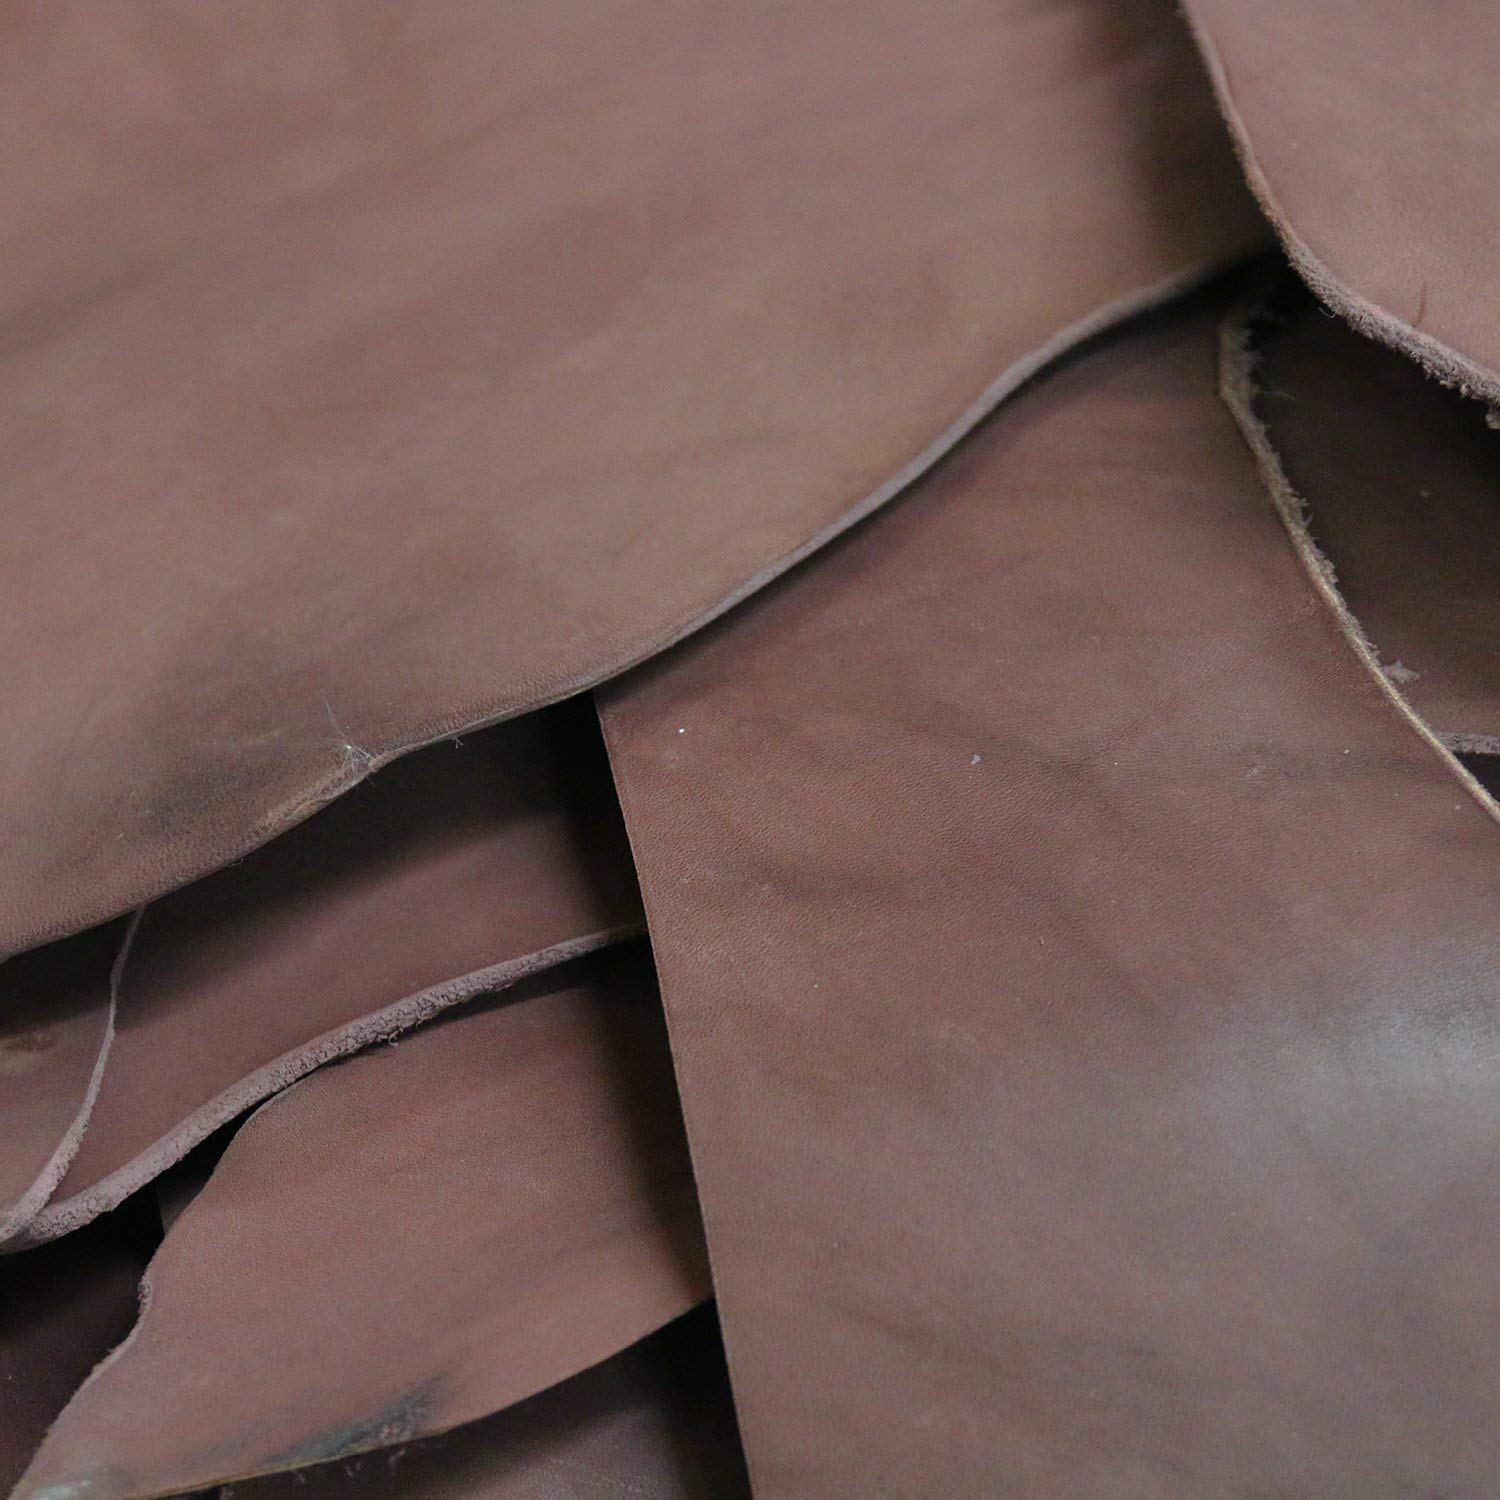 5 Pounds of, Large, Usable Holster & Sheath Leather Scraps, Rich Havanna Brown Color, Molds and Tools Well, Great For Leather Crafting, Holster and Sheath Making, USA Hide by Outfitters Supply (Image #4)